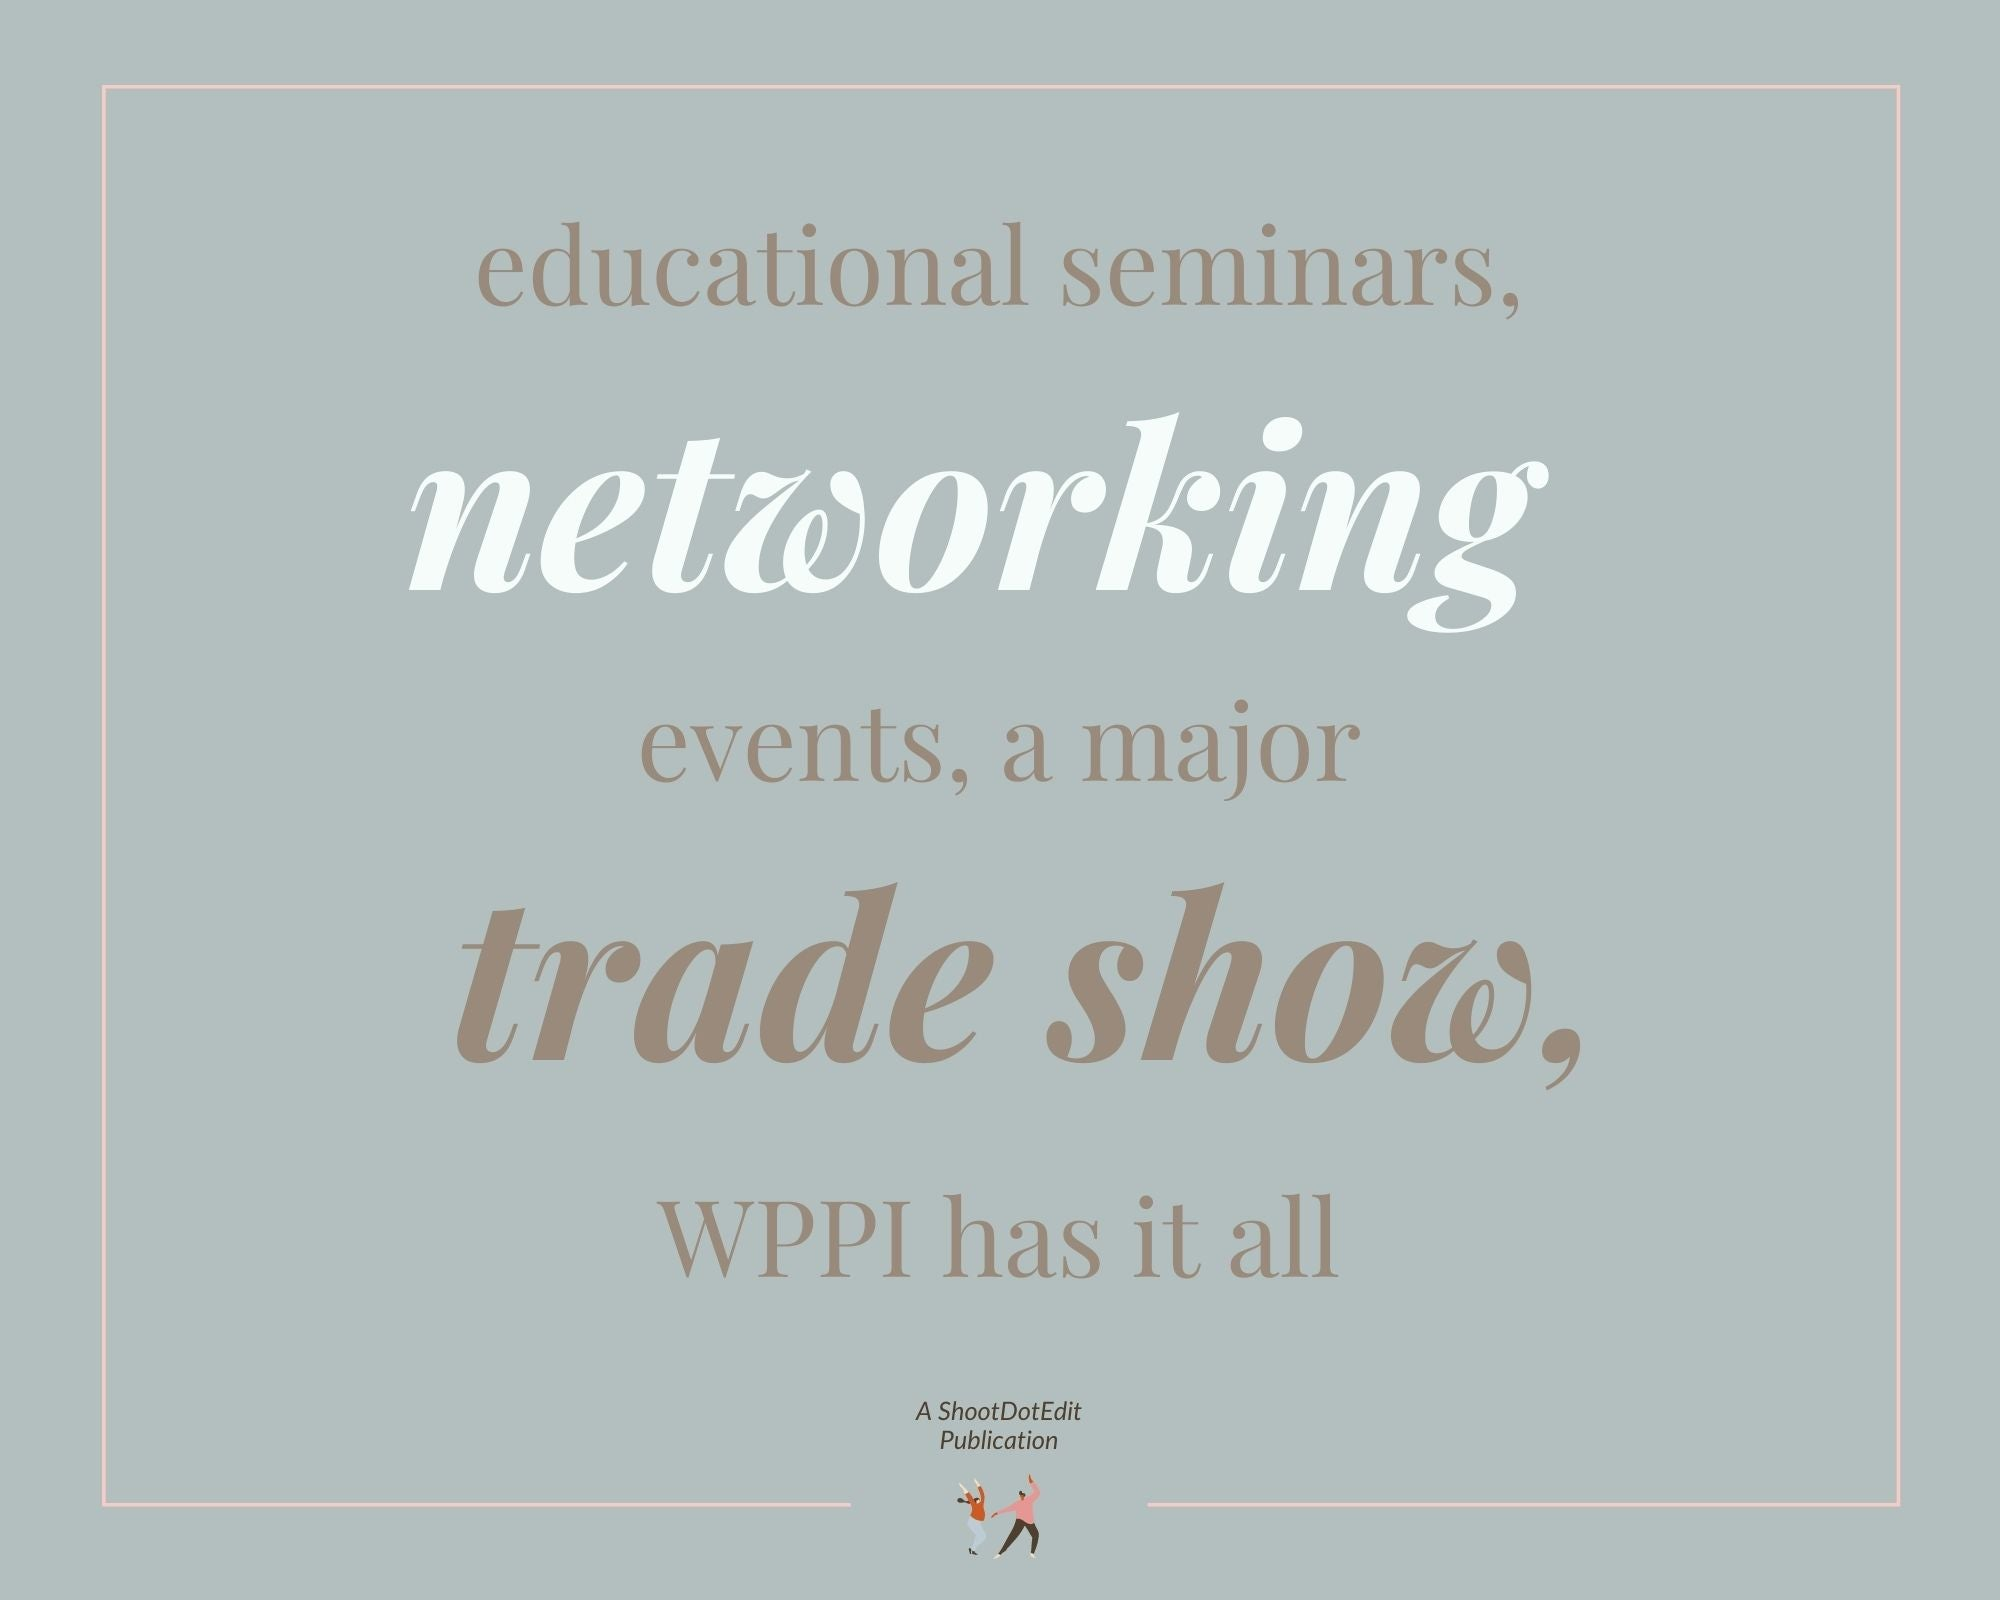 Infographic stating educational seminars, networking events, a major trade show - WPPI photography workshop has it all.